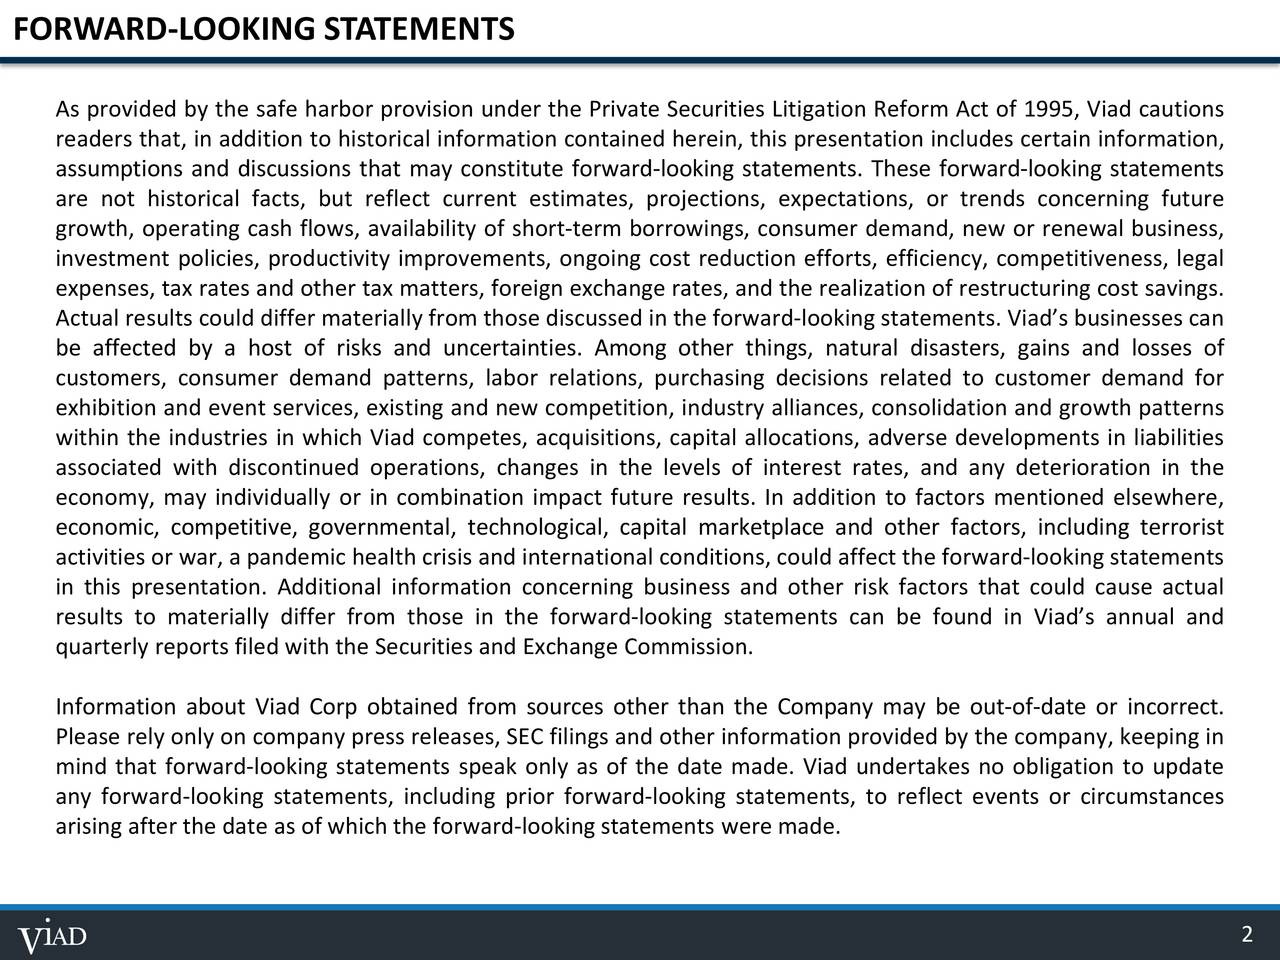 As provided by the safe harbor provision under the Private Securities Litigation Reform Act of 1995, Viad cautions readers that, in addition to historical information contained herein, this presentation includes certain information, assumptions and discussions that may constitute forward-looking statements. These forward-looking statements are not historical facts, but reflect current estimates, projections, expectations, or trends concerning future growth, operating cash flows, availability of short-term borrowings, consumer demand, new or renewal business, investment policies, productivity improvements, ongoing cost reduction efforts, efficiency, competitiveness, legal expenses, tax rates and other tax matters, foreign exchange rates, and the realization of restructuring cost savings. Actual results could differ materially from those discussed in the forward-looking statements. Viads businesses can be affected by a host of risks and uncertainties. Among other things, natural disasters, gains and losses of customers, consumer demand patterns, labor relations, purchasing decisions related to customer demand for exhibition and event services, existing and new competition, industry alliances, consolidation and growth patterns within the industries in which Viad competes, acquisitions, capital allocations, adverse developments in liabilities associated with discontinued operations, changes in the levels of interest rates, and any deterioration in the economy, may individually or in combination impact future results. In addition to factors mentioned elsewhere, economic, competitive, governmental, technological, capital marketplace and other factors, including terrorist activities or war, a pandemic health crisis and international conditions, could affect the forward-looking statements in this presentation. Additional information concerning business and other risk factors that could cause actual results to materially differ from those in the forward-looking statements can be found in Viads annual and quarterly reports filed with the Securities and Exchange Commission. Information about Viad Corp obtained from sources other than the Company may be out-of-date or incorrect. Please rely only on company press releases, SEC filings and other information provided by the company, keeping in mind that forward-looking statements speak only as of the date made. Viad undertakes no obligation to update any forward-looking statements, including prior forward-looking statements, to reflect events or circumstances arising after the date as of which the forward-looking statements were made. 2